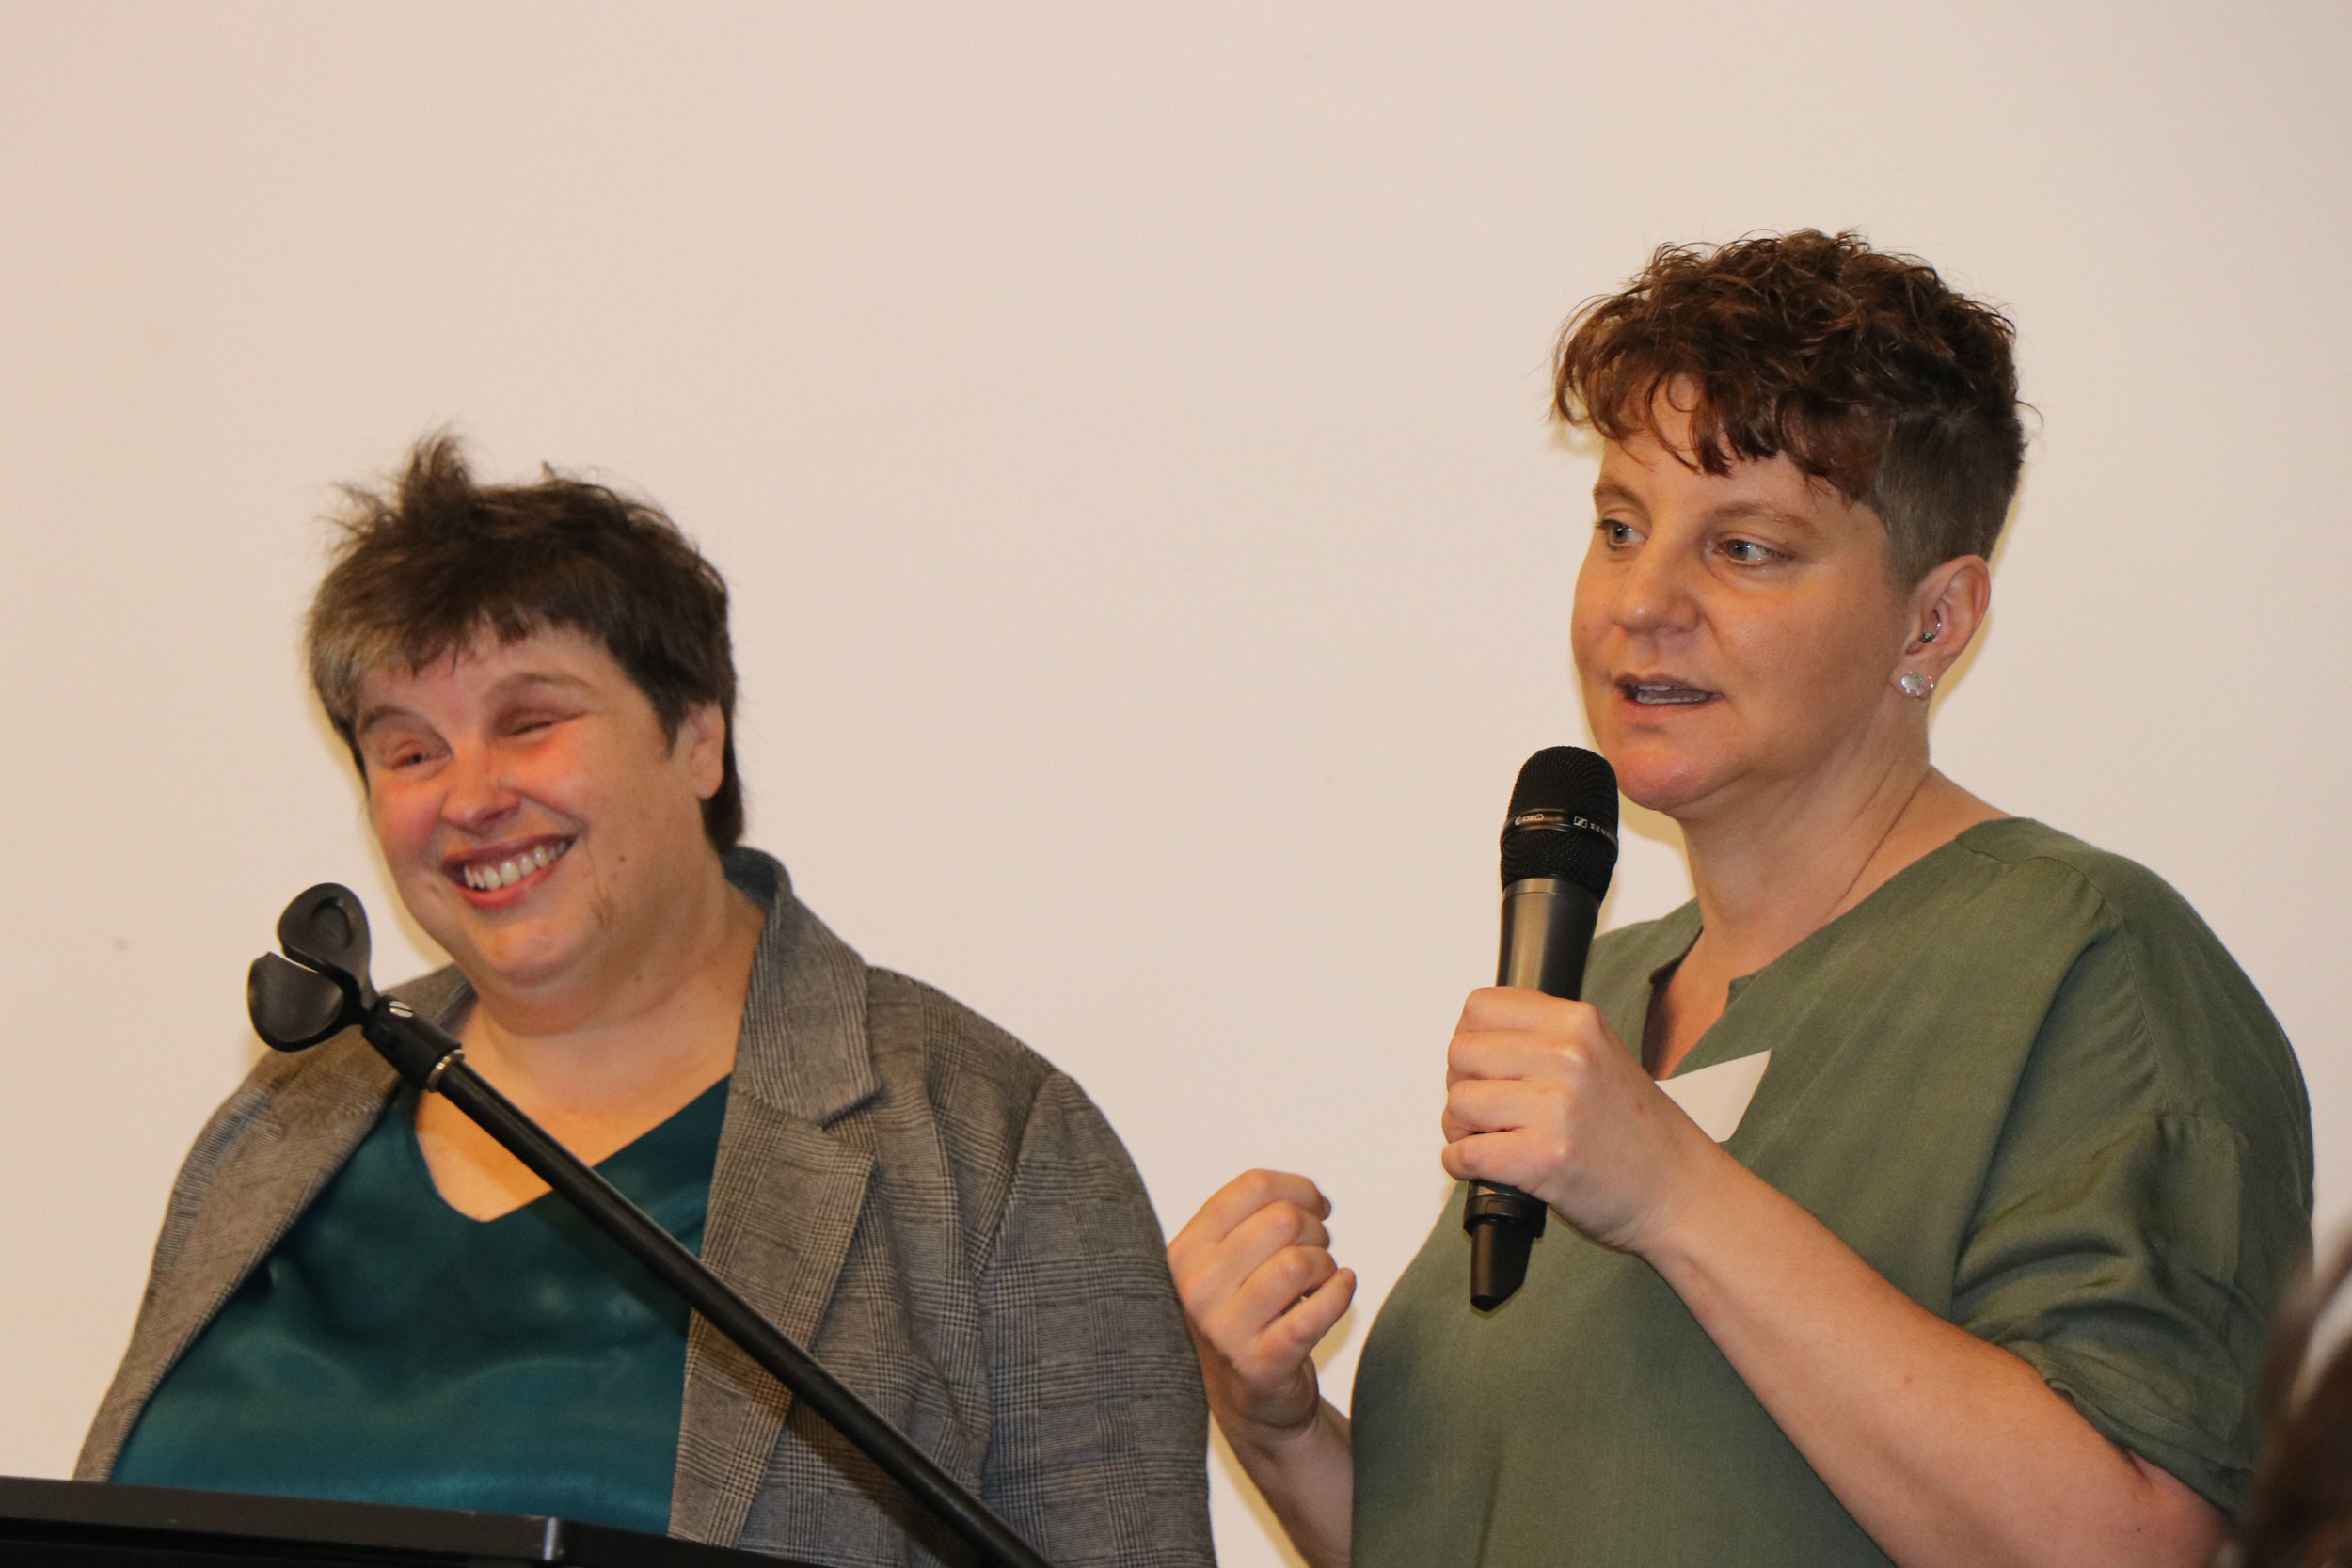 Two women stand at a high desk. One of them holds a microphone and is speaking to the audience (which you can't see in the picture).